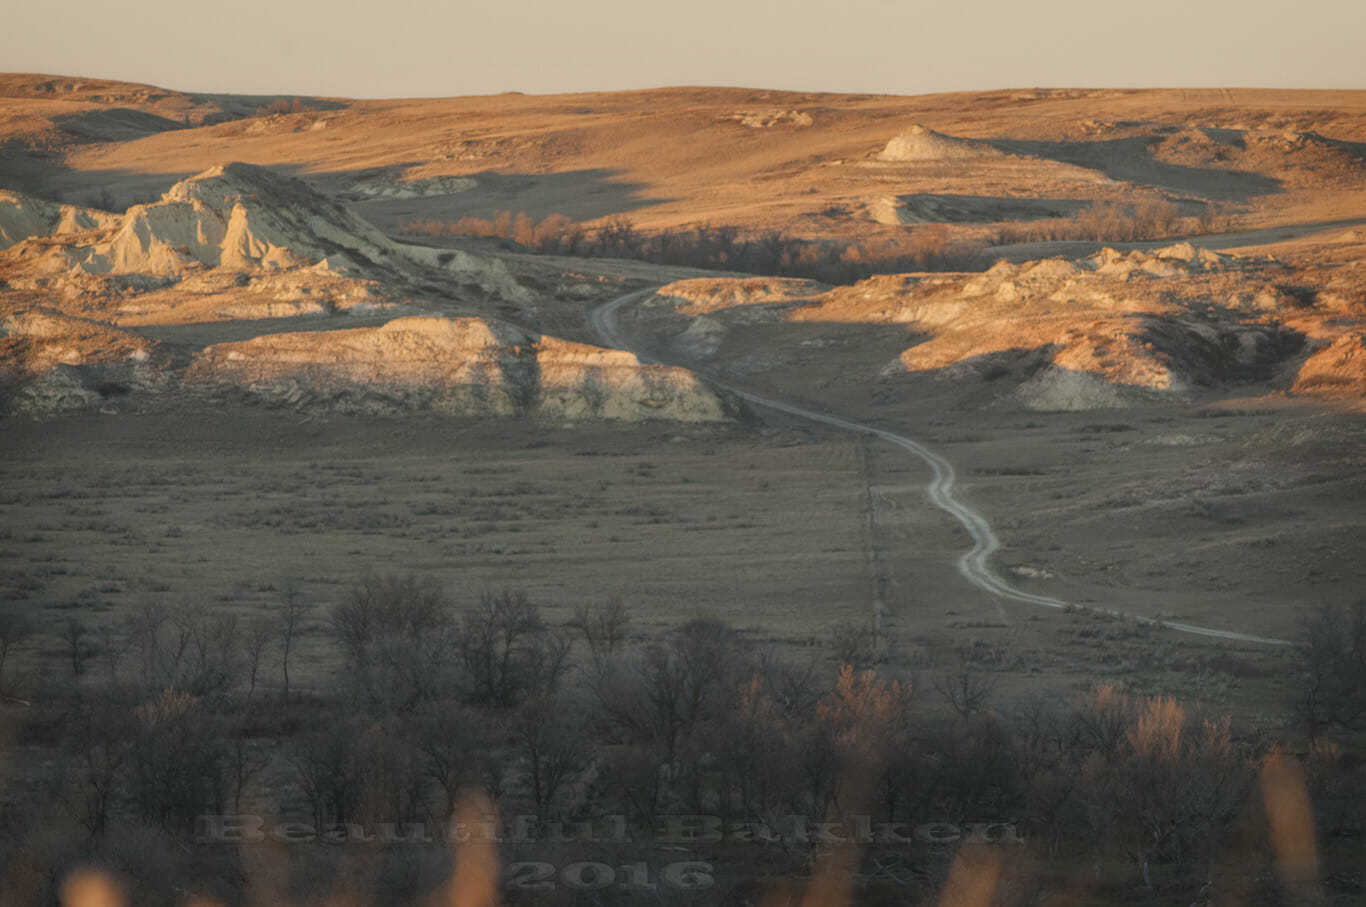 To the north, the rancher's access road snakes through the hills.